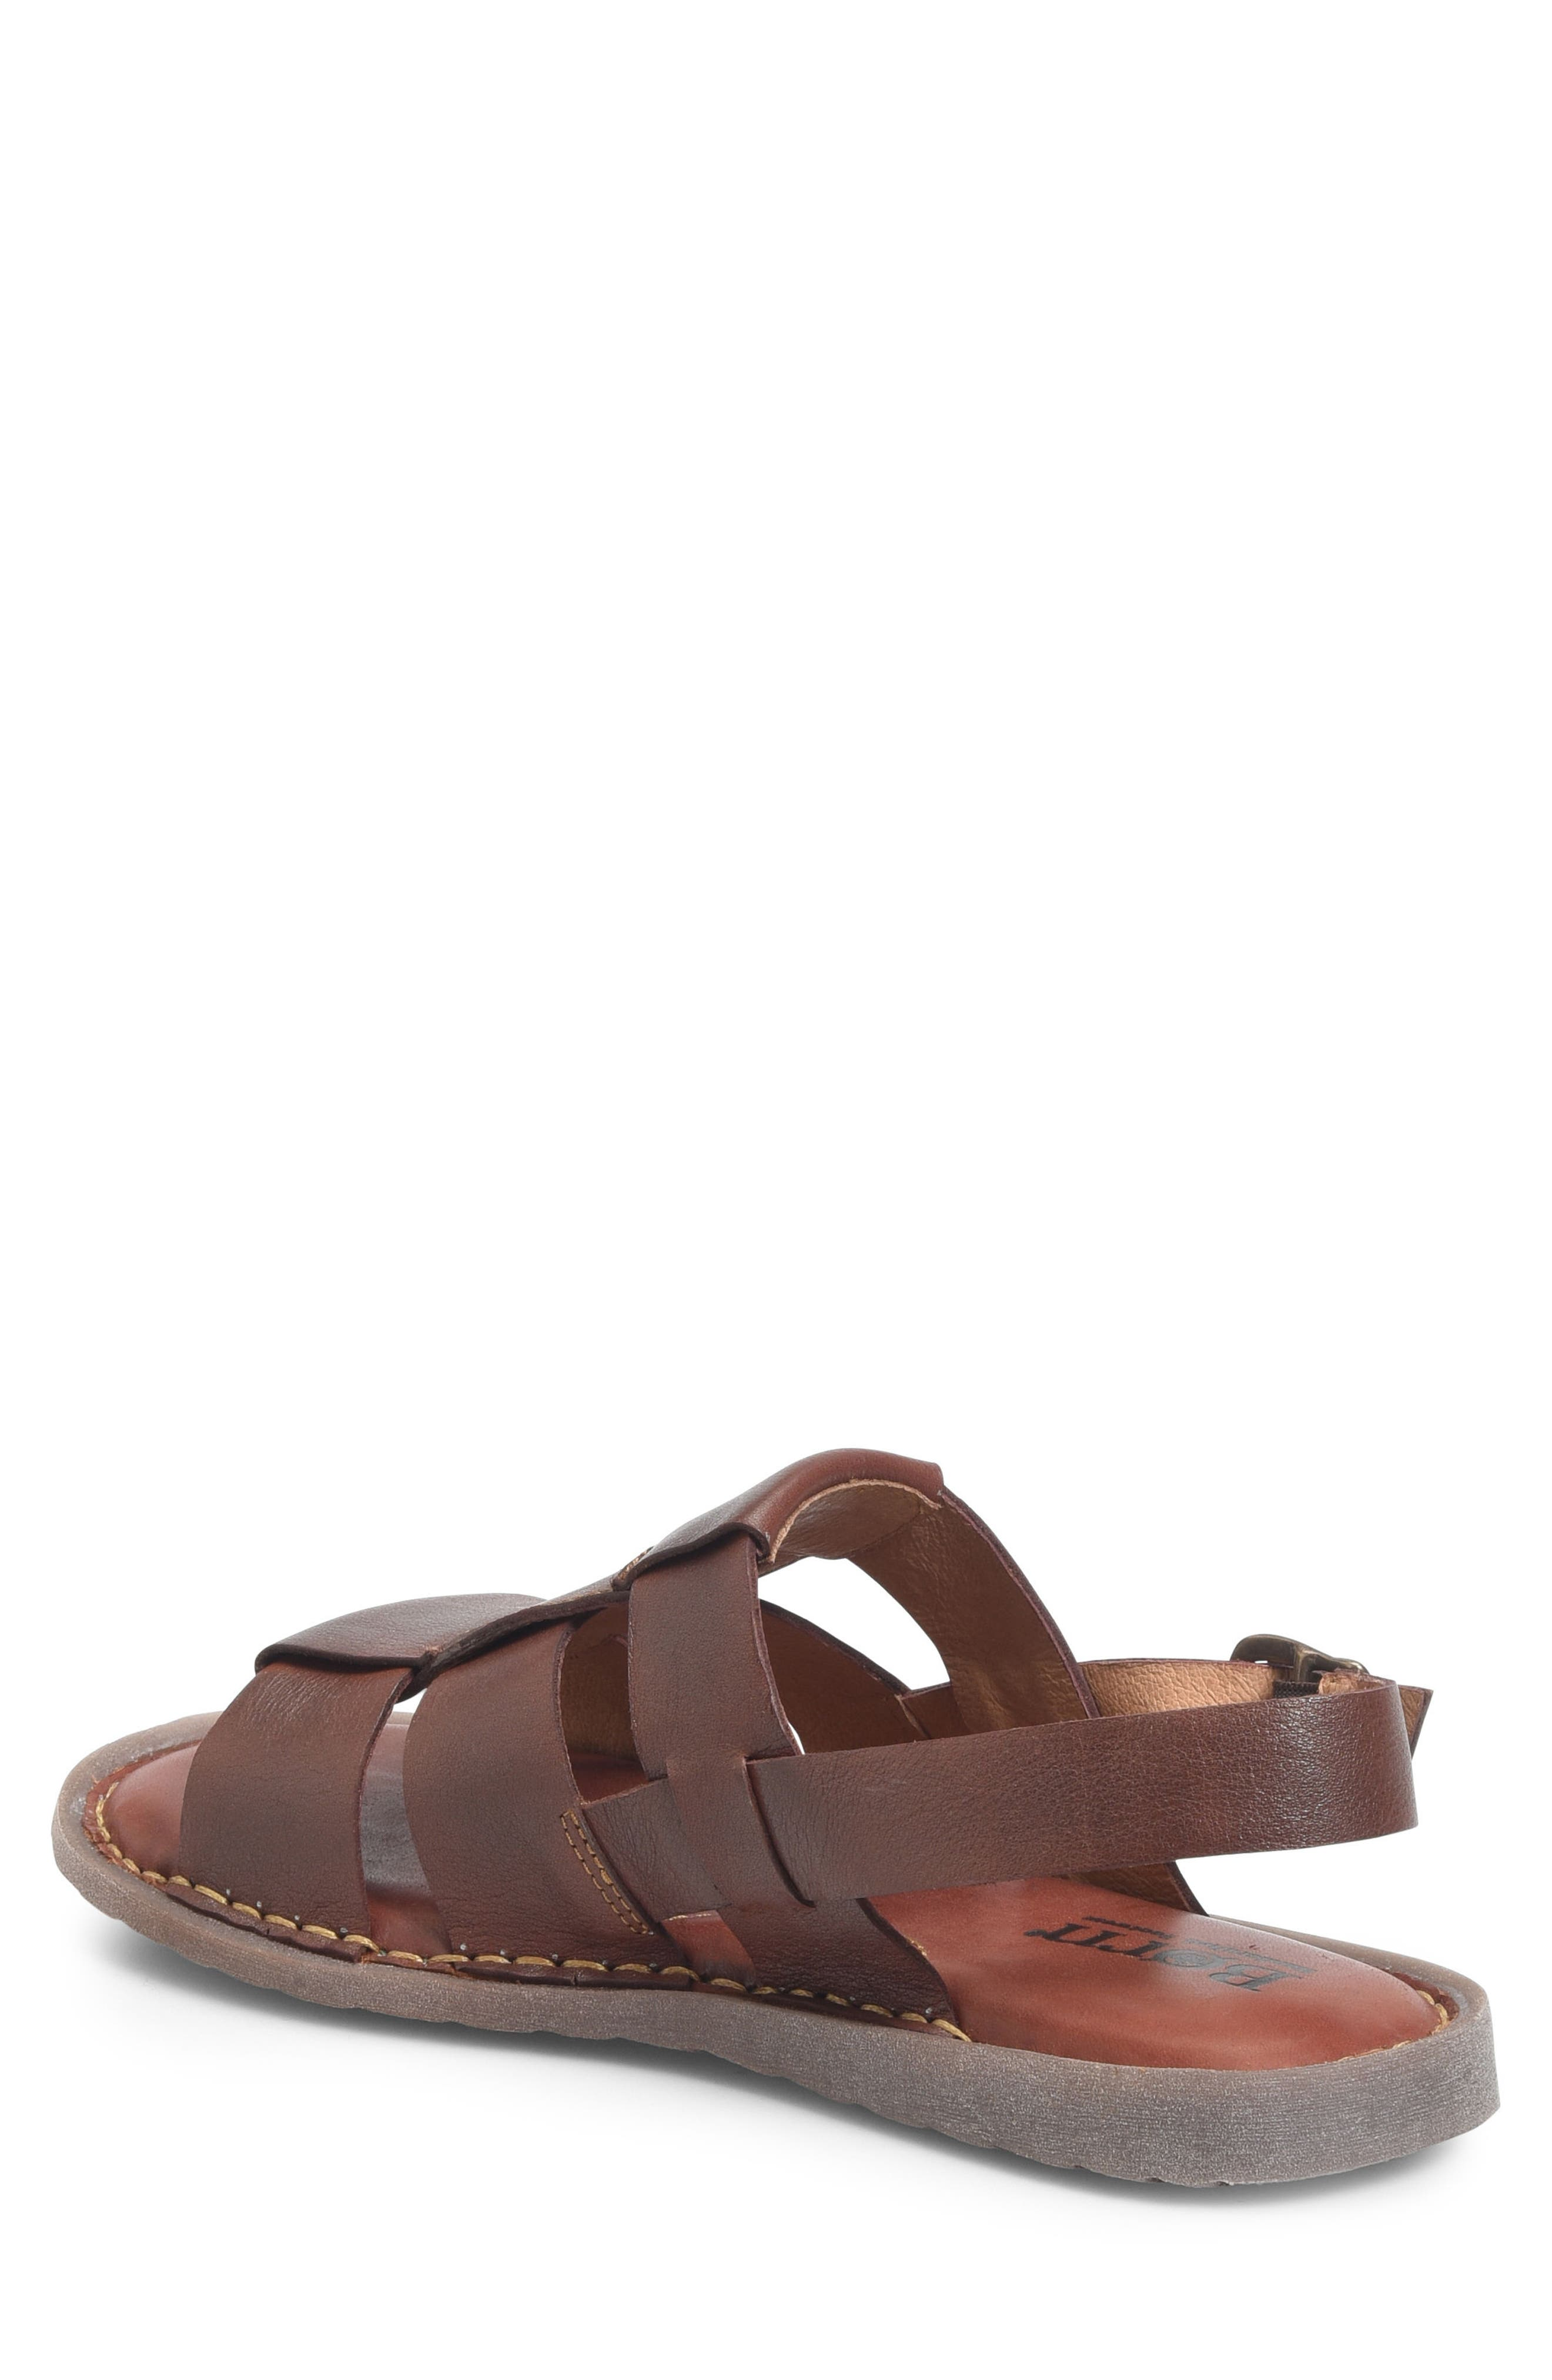 Surf Fisherman Sandal,                             Alternate thumbnail 2, color,                             BROWN LEATHER